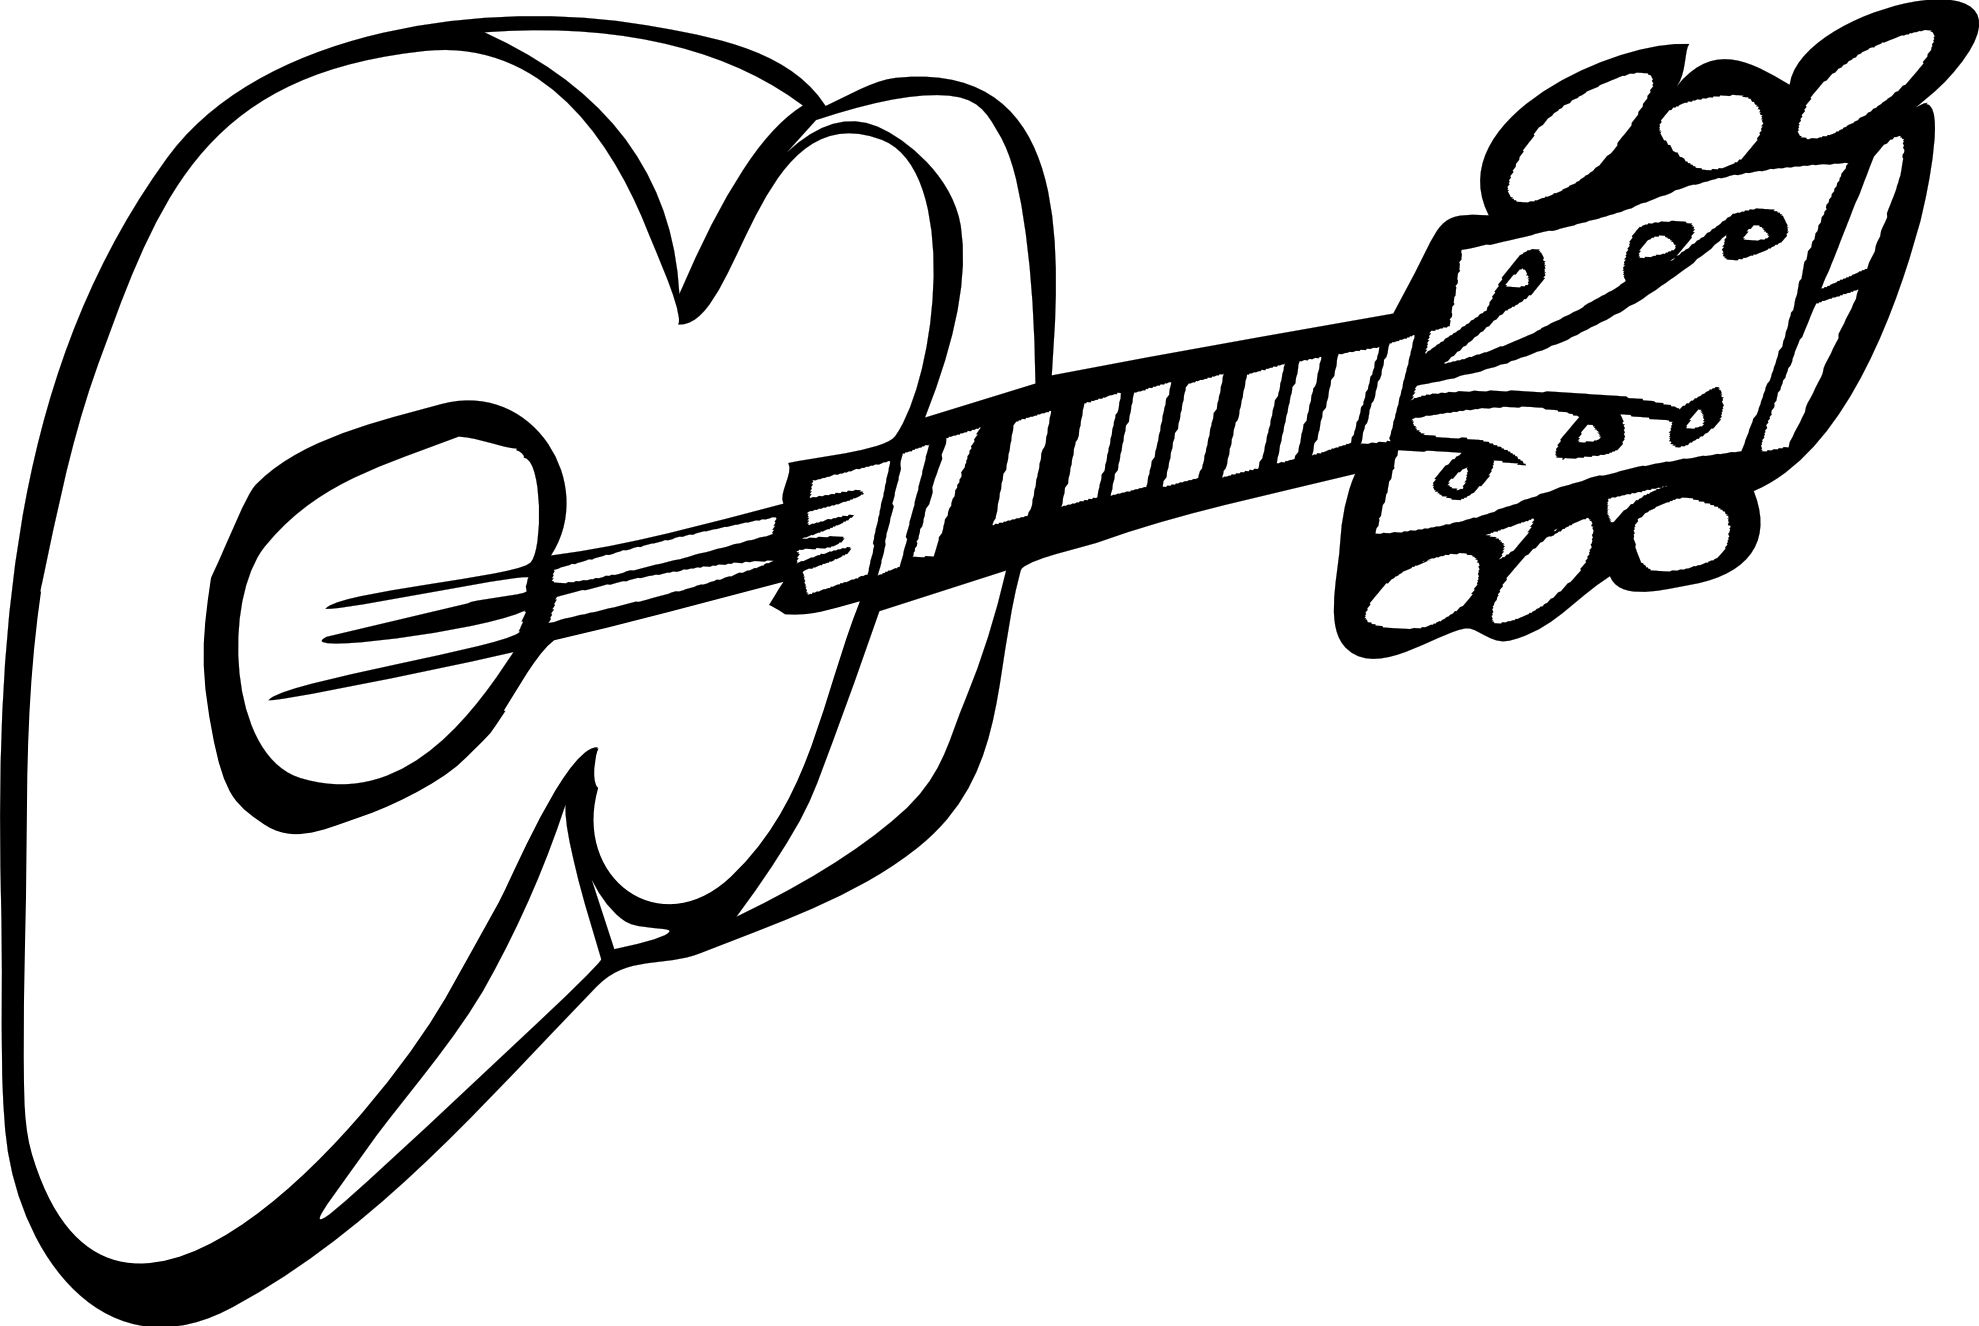 1979x1326 Drawn Guitar Black And White